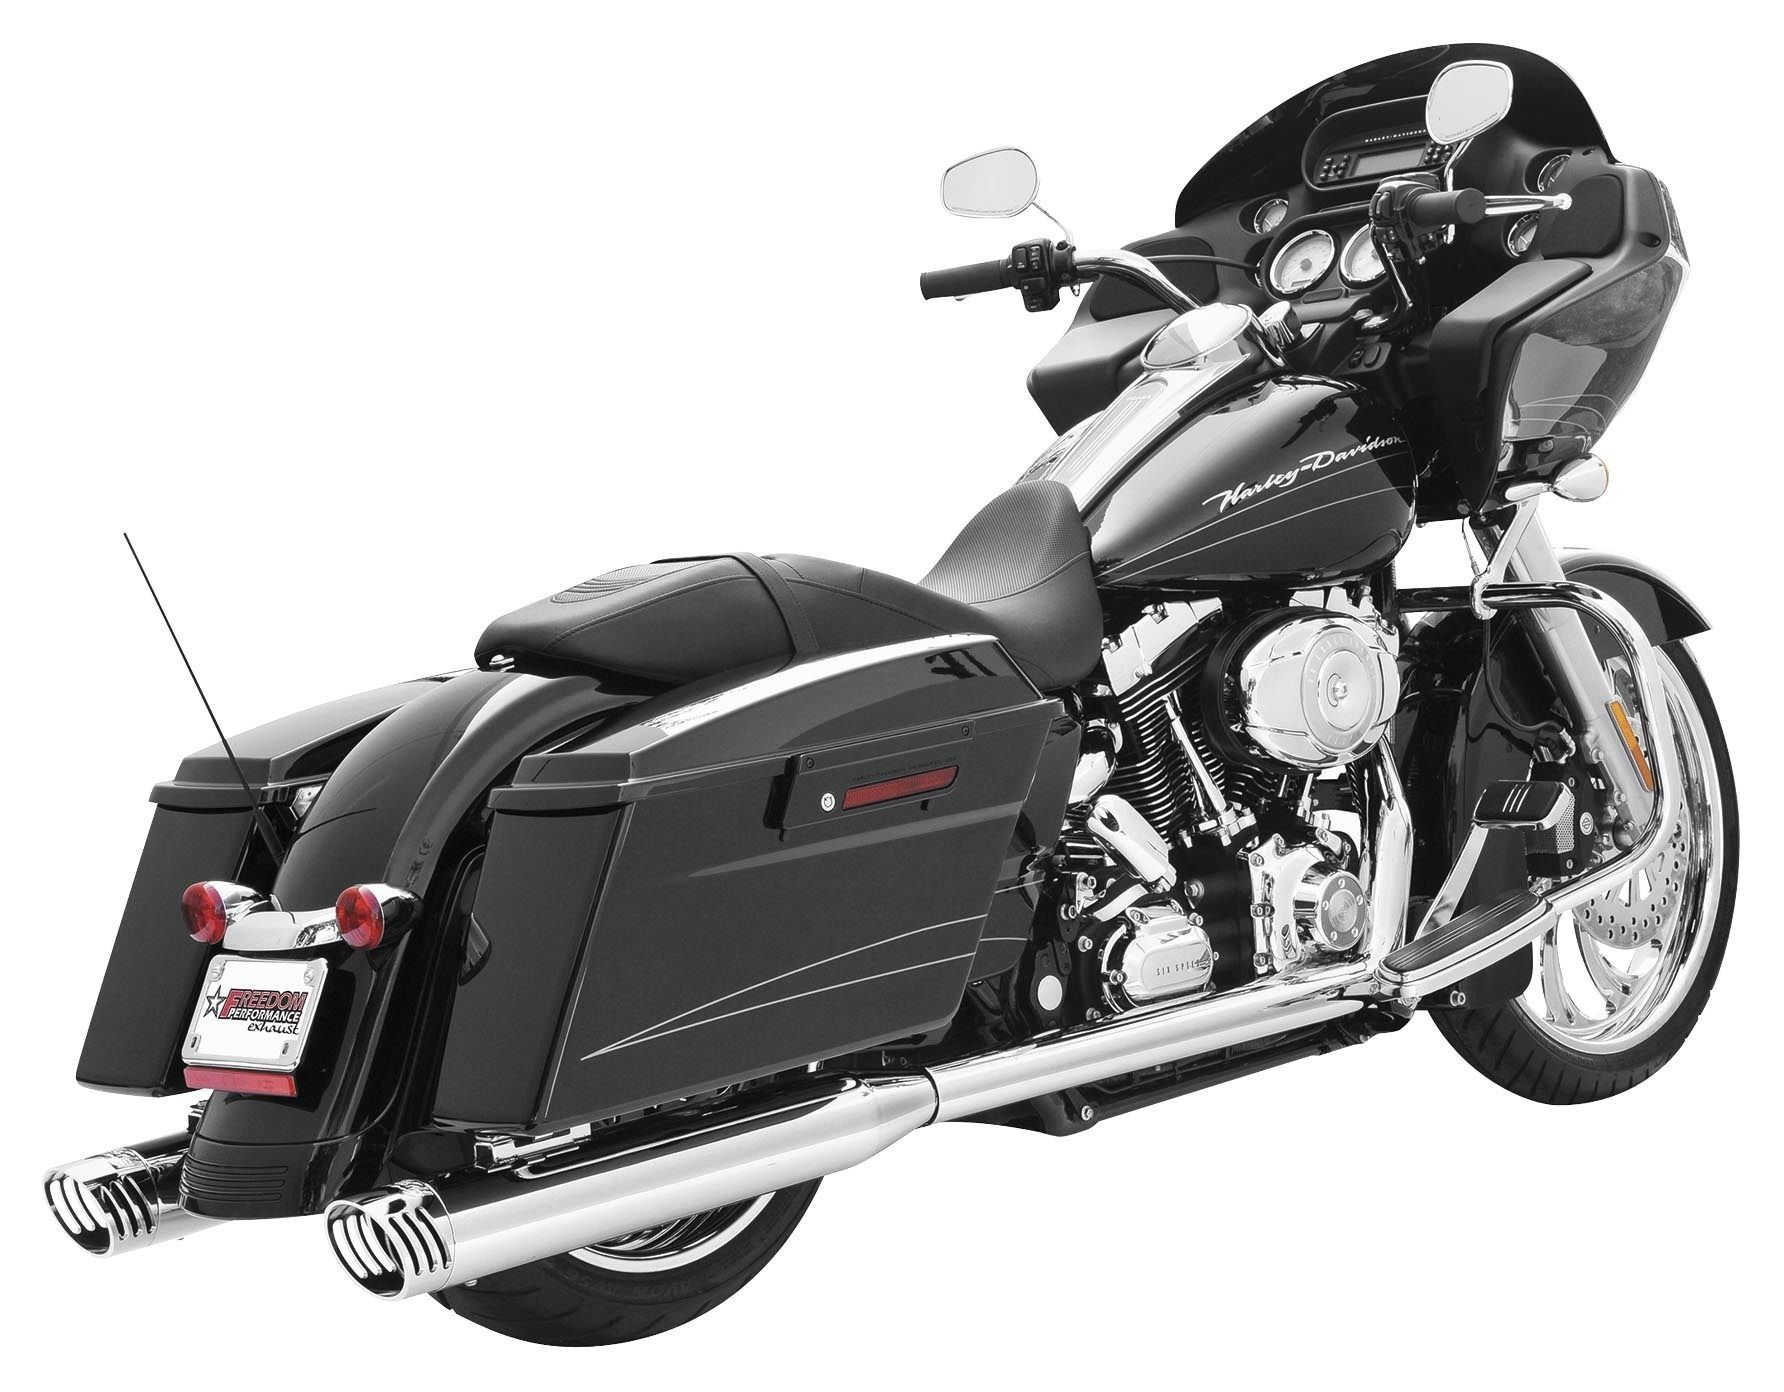 2014 Street Glide Wiring Diagram Free Picture Wiring Diagram